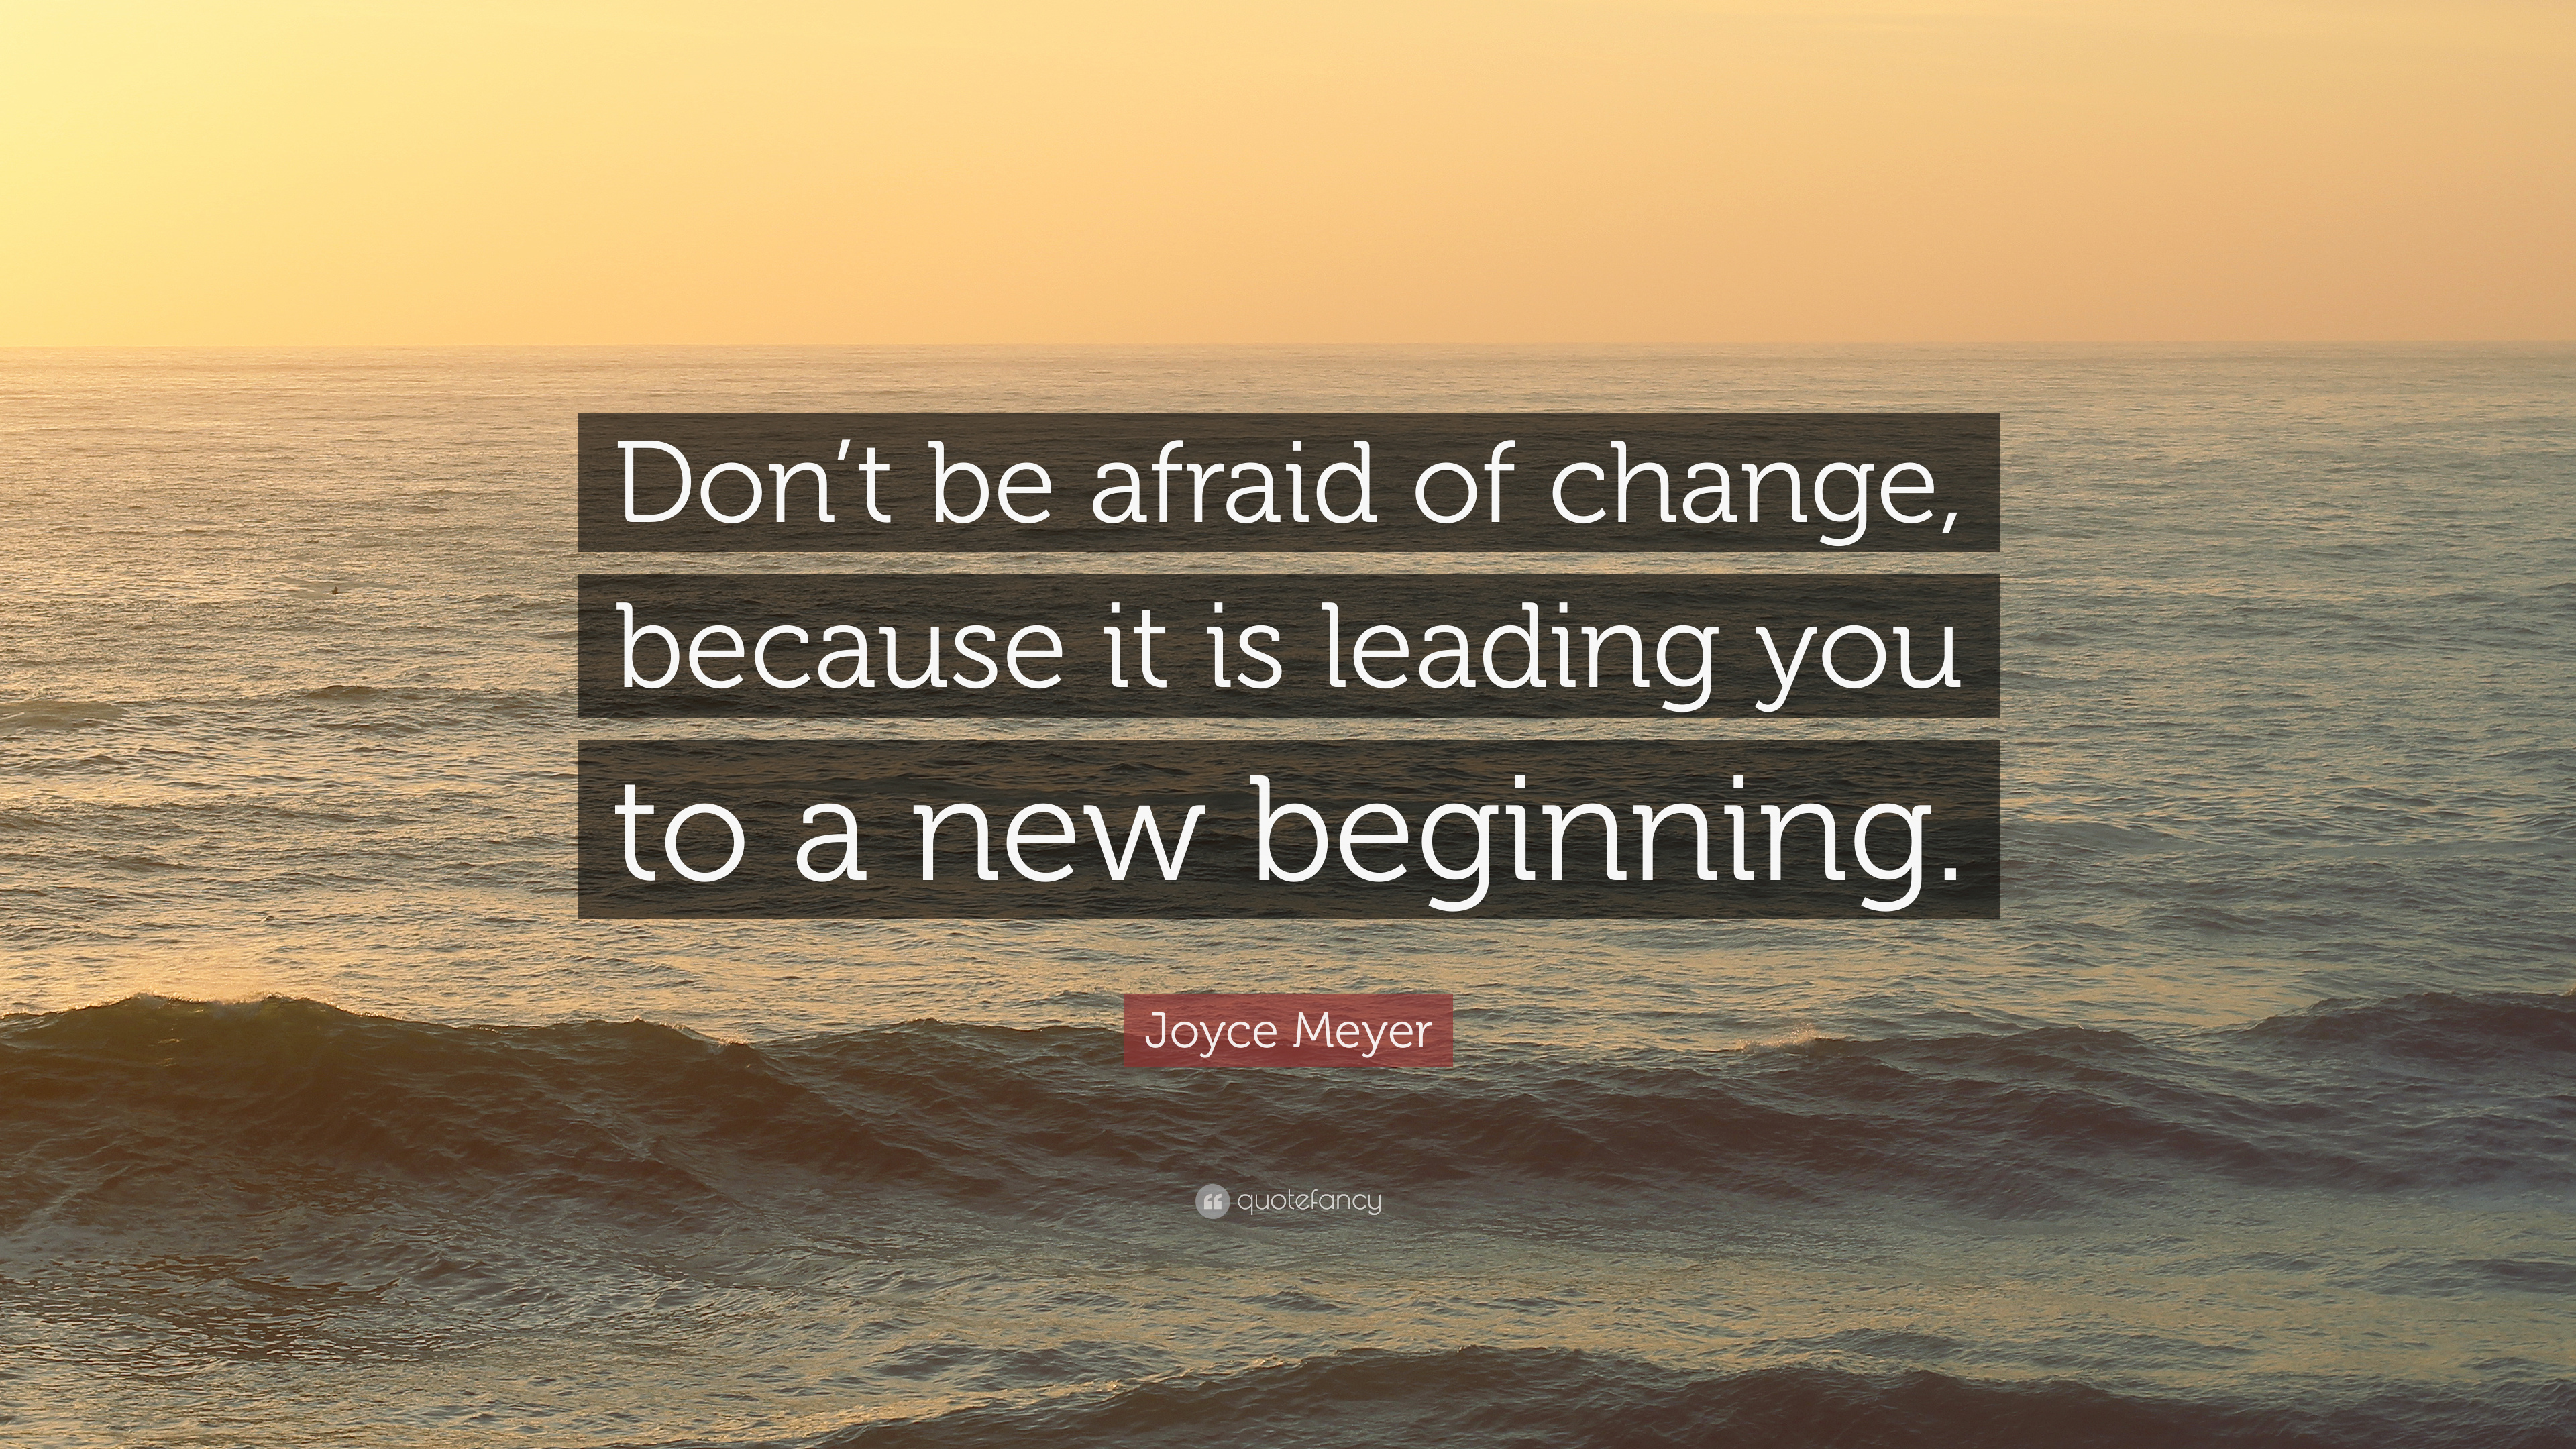 "Dont Be Afraid Of Change Quotes New Beginning Joyce Meyers: Joyce Meyer Quote: ""Don't Be Afraid Of Change, Because It"